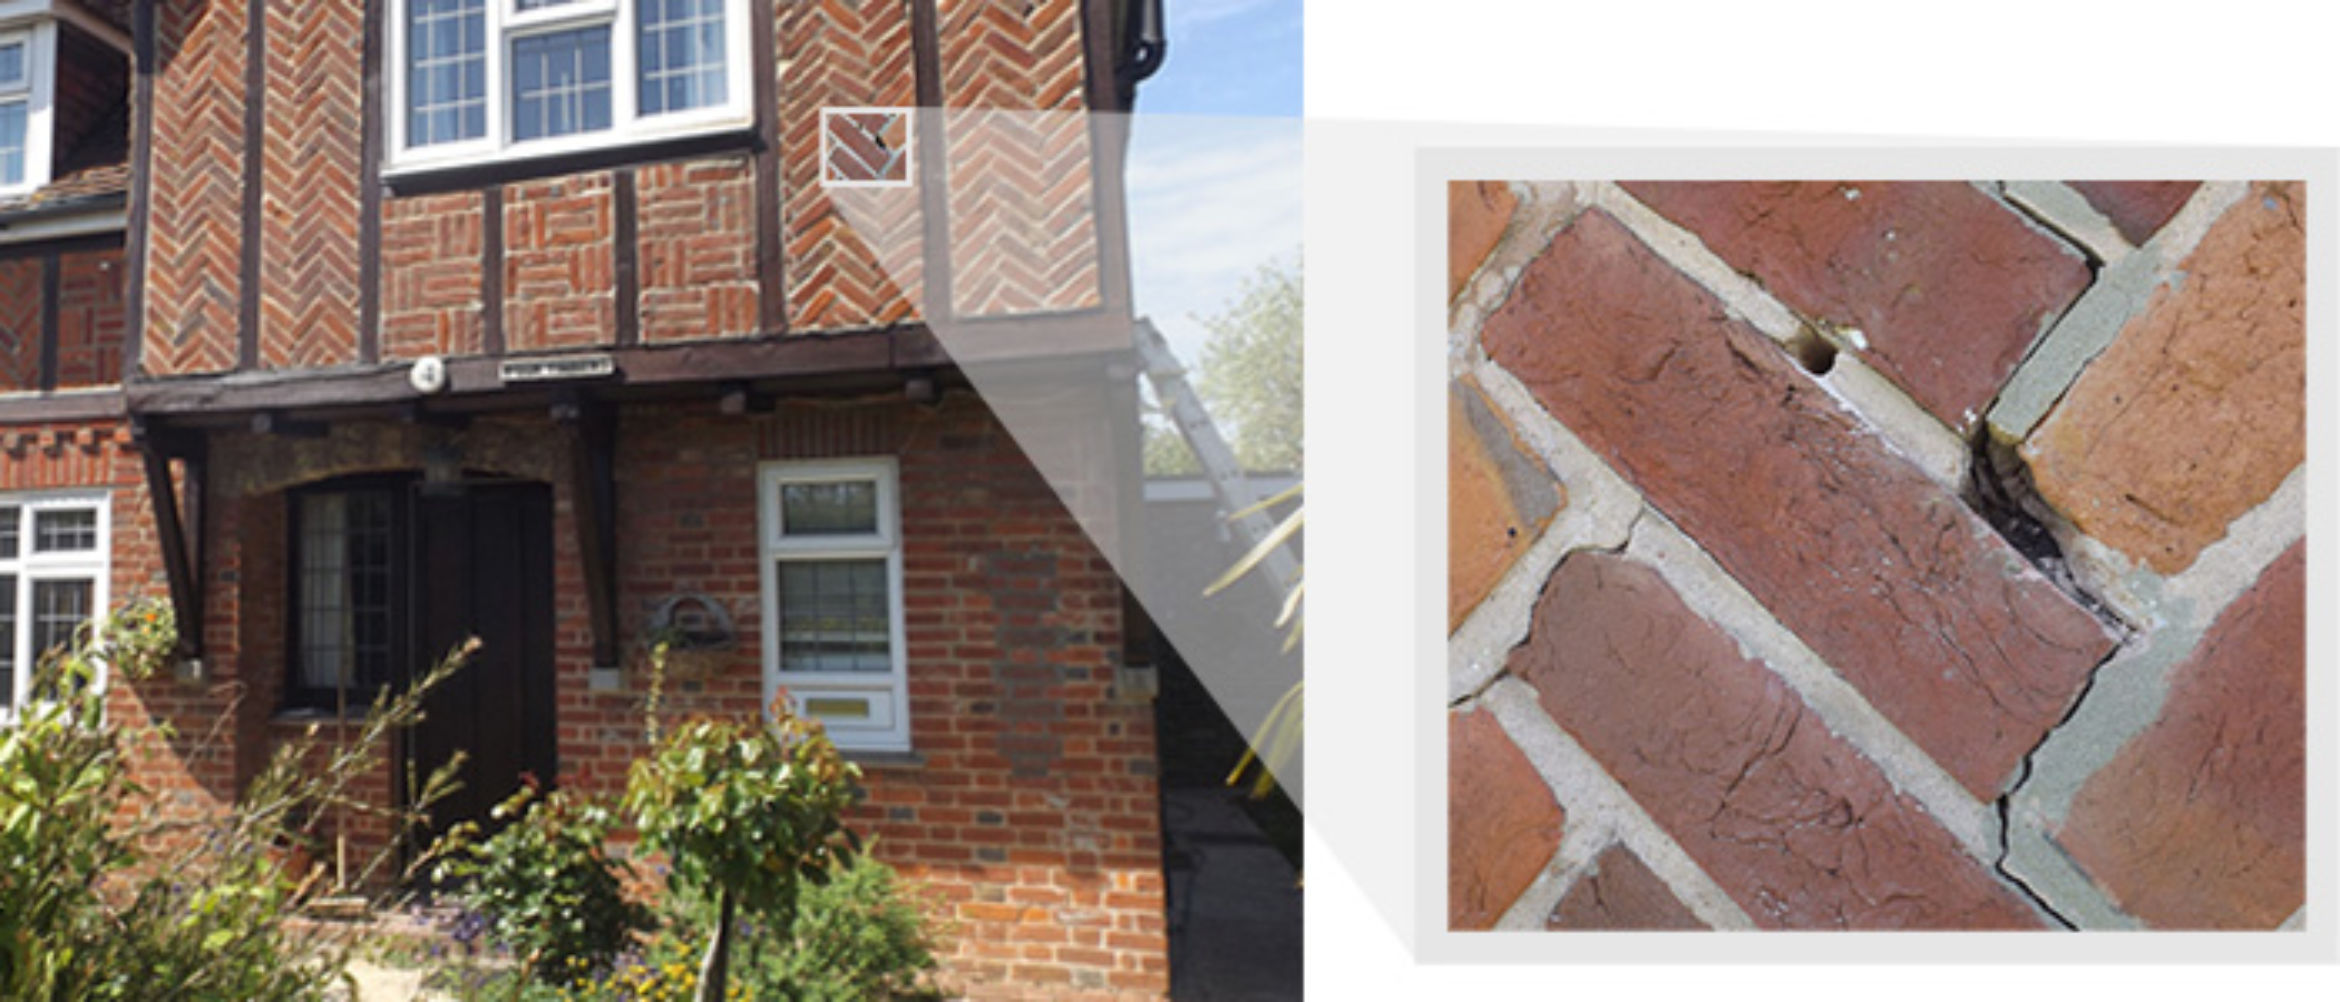 Zig-Zag Cracks in Herrigbone Brickwork